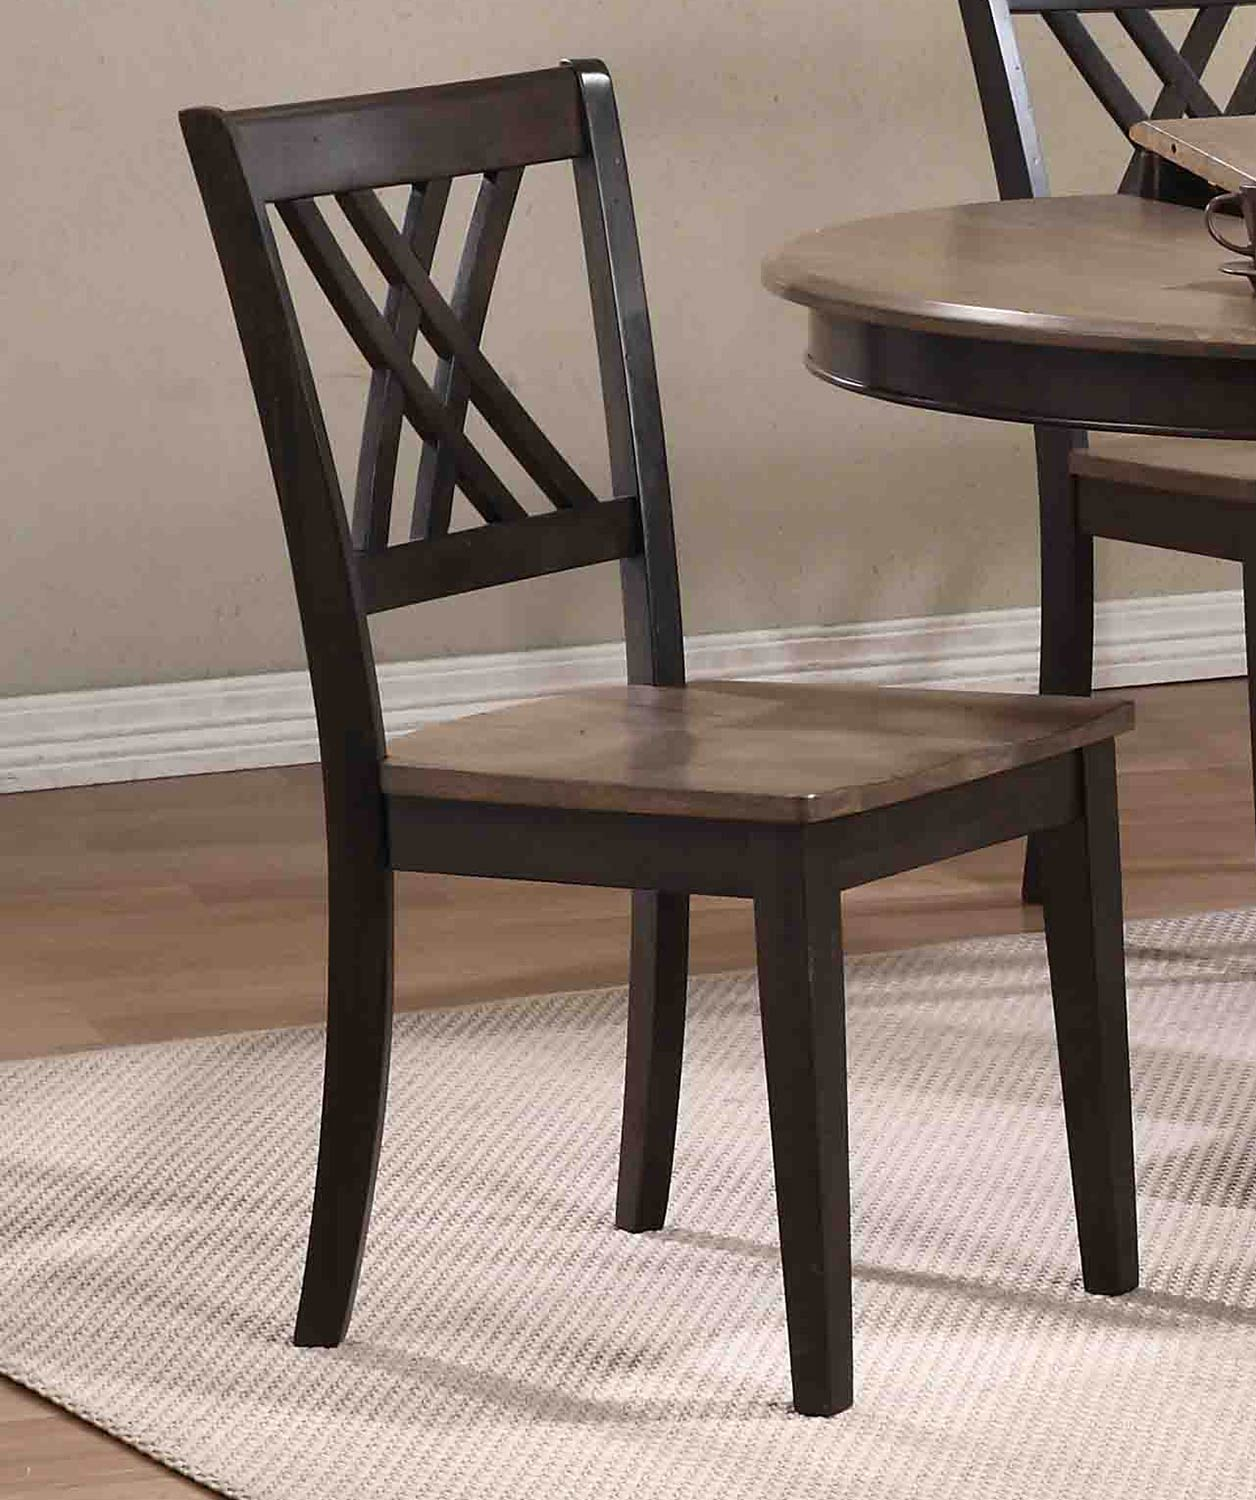 Iconic Furniture Double X-Back Dining Chair - Grey Stone/Black Stone